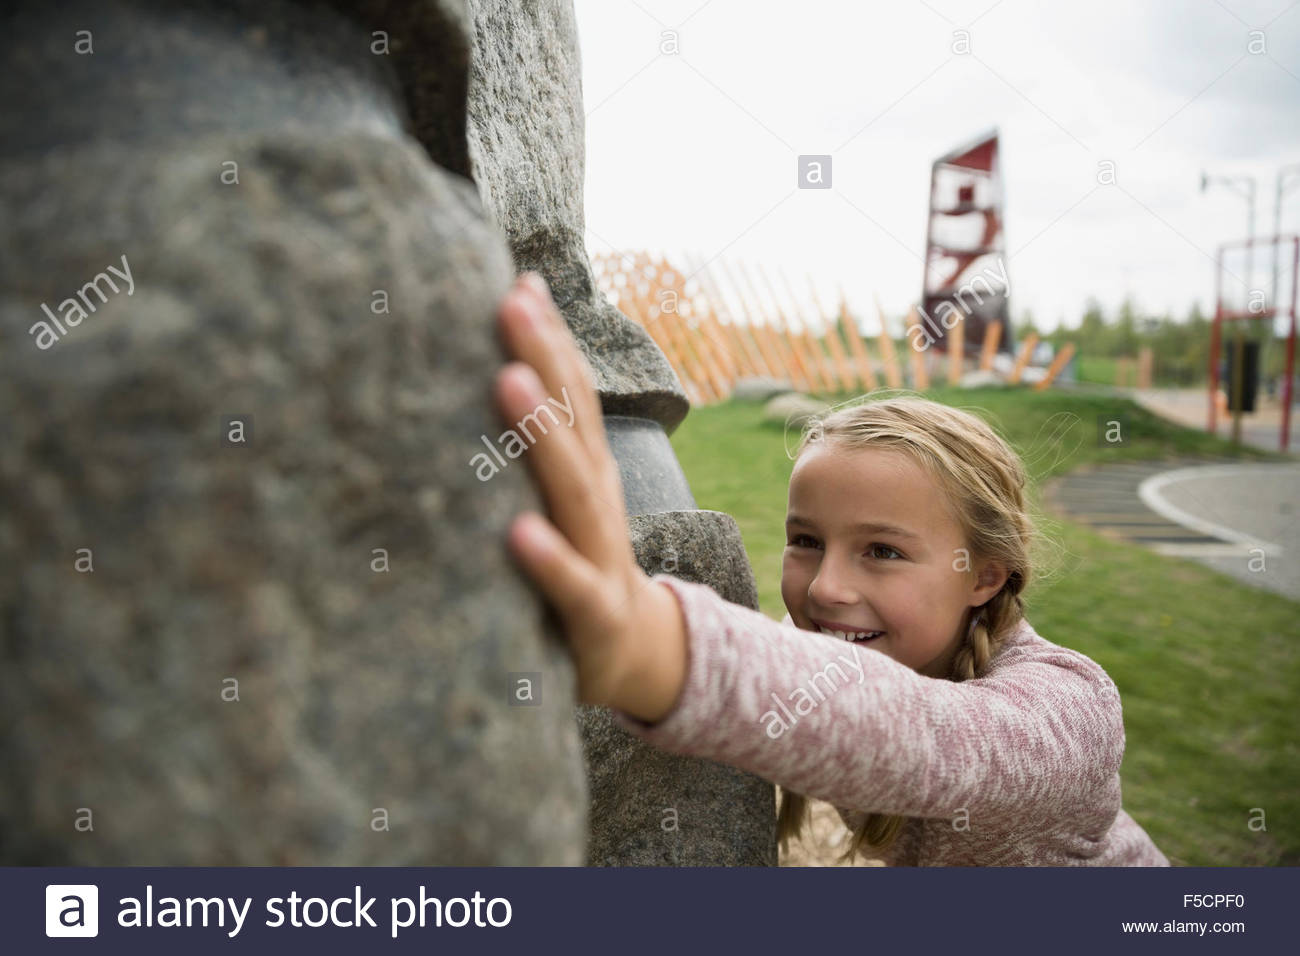 Girl pushing large boulder at playground - Stock Image